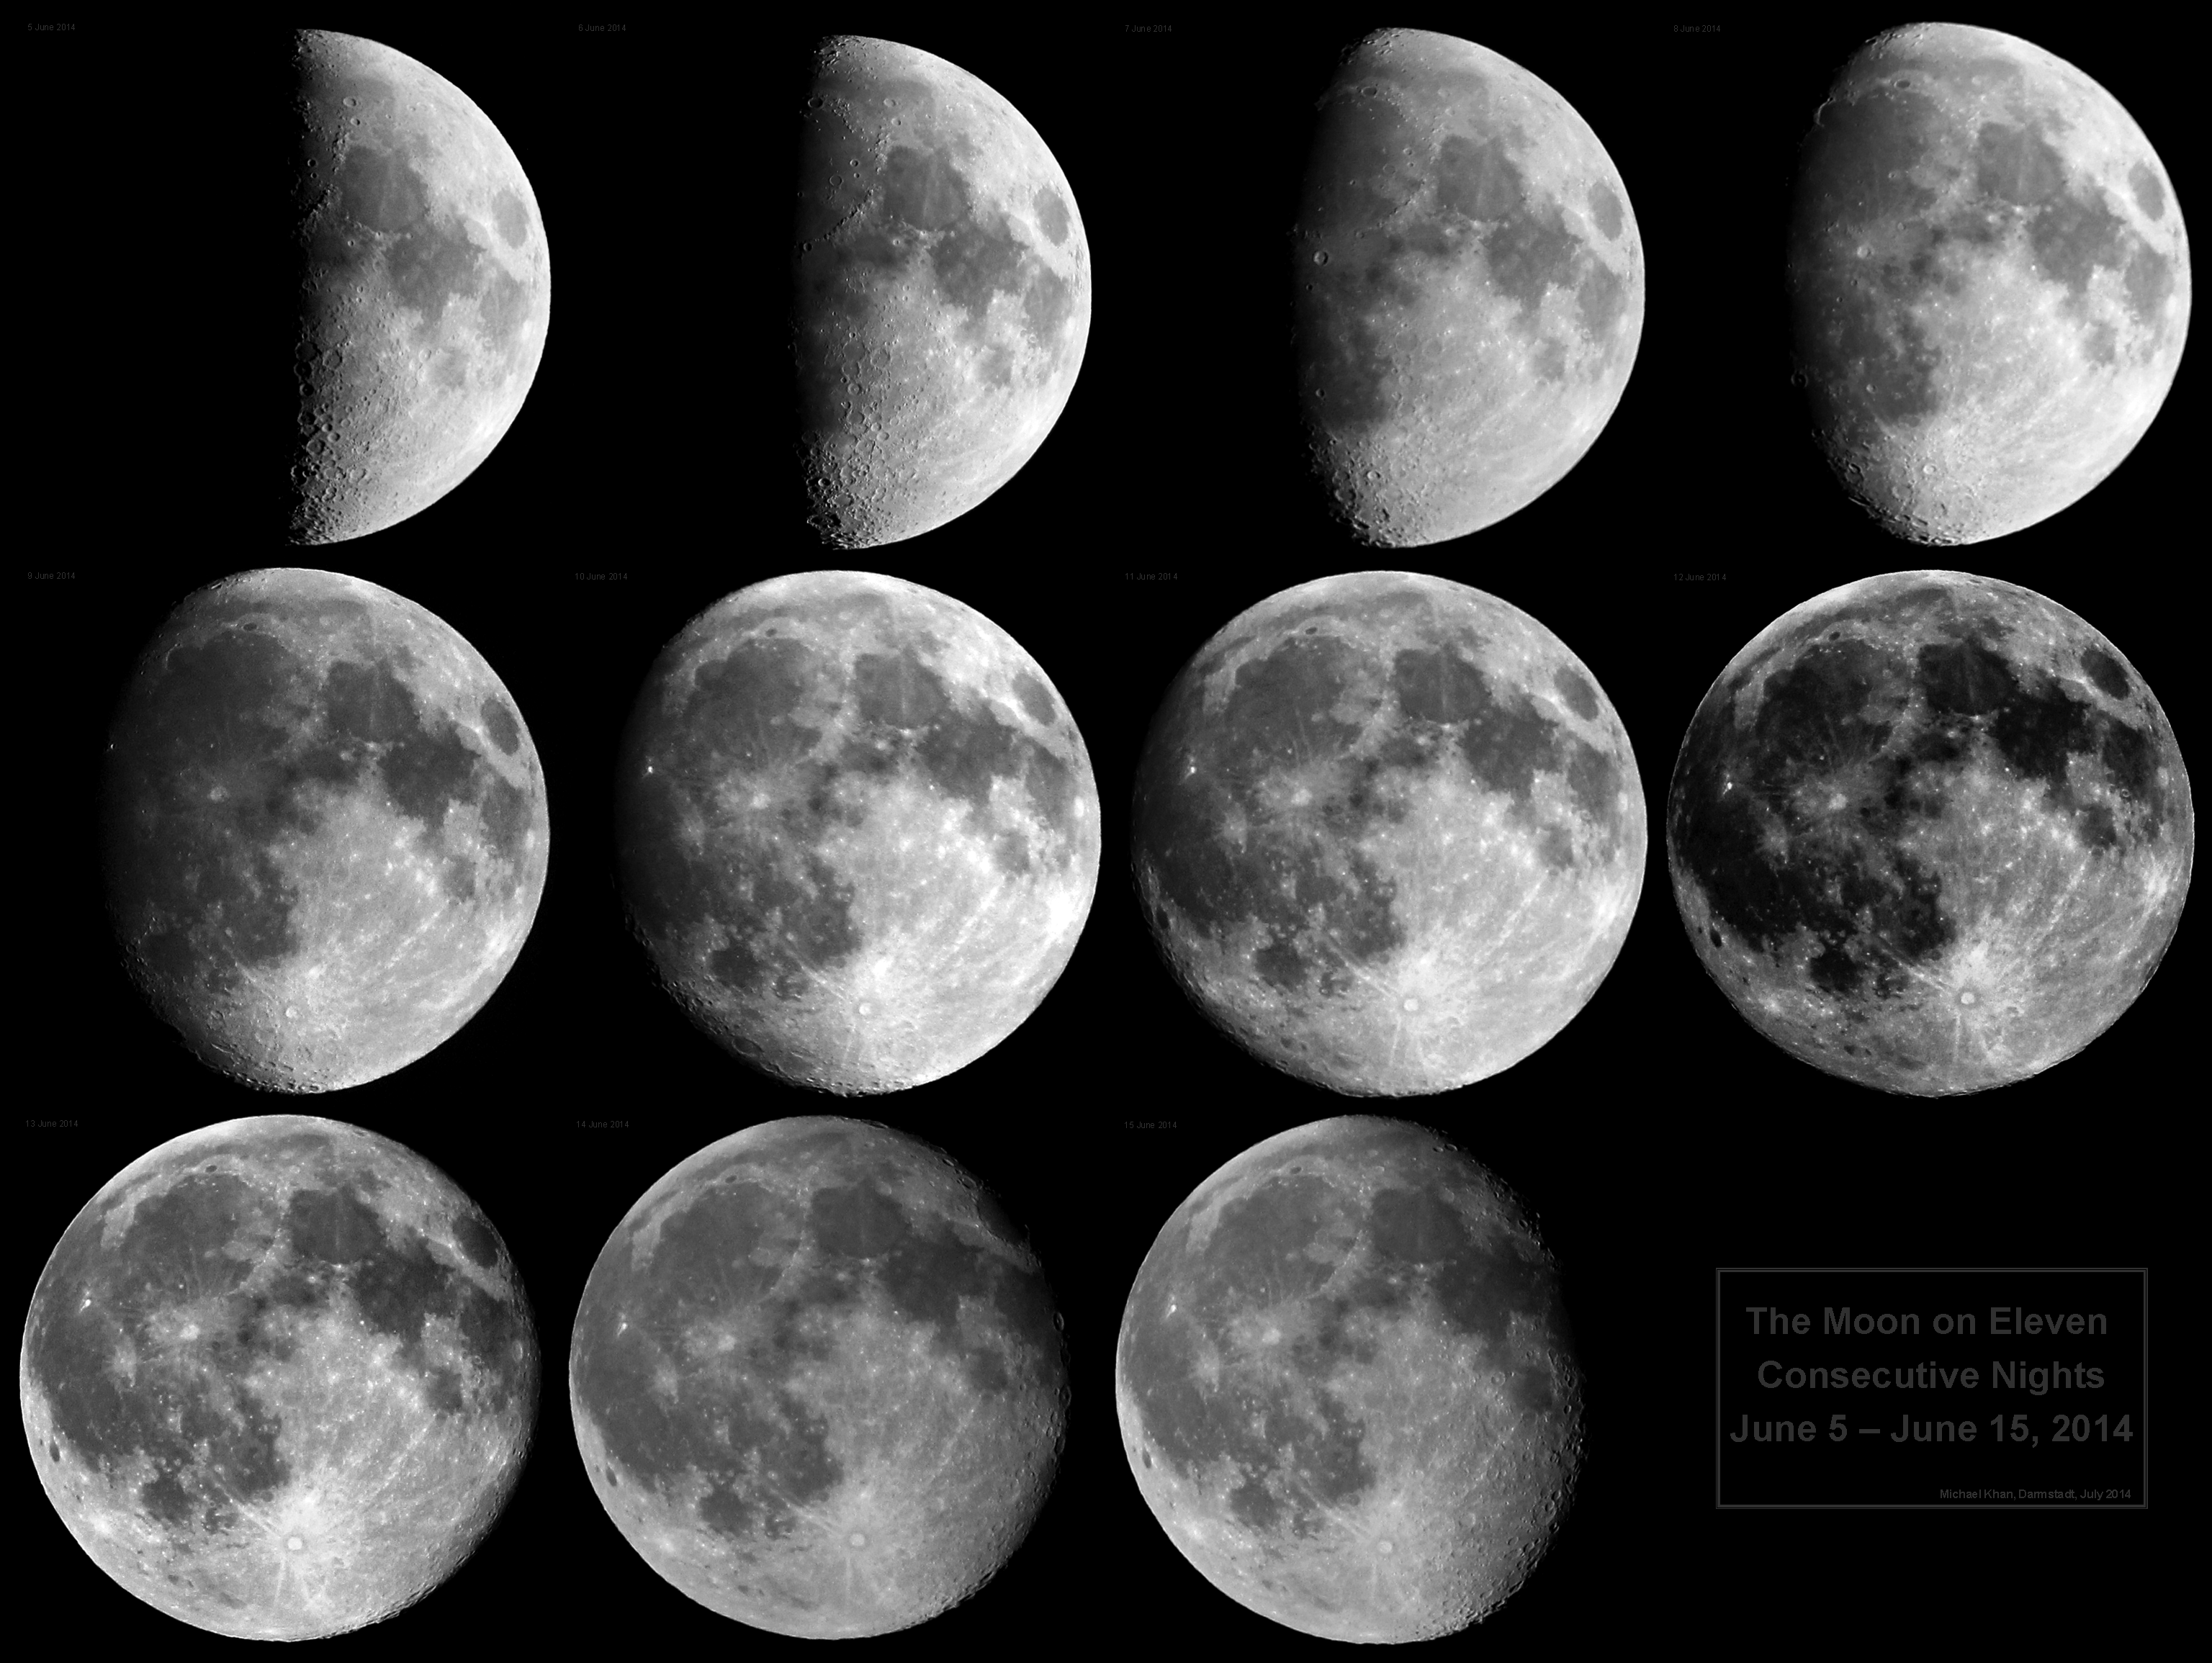 The Moon on eleven consecutive nights